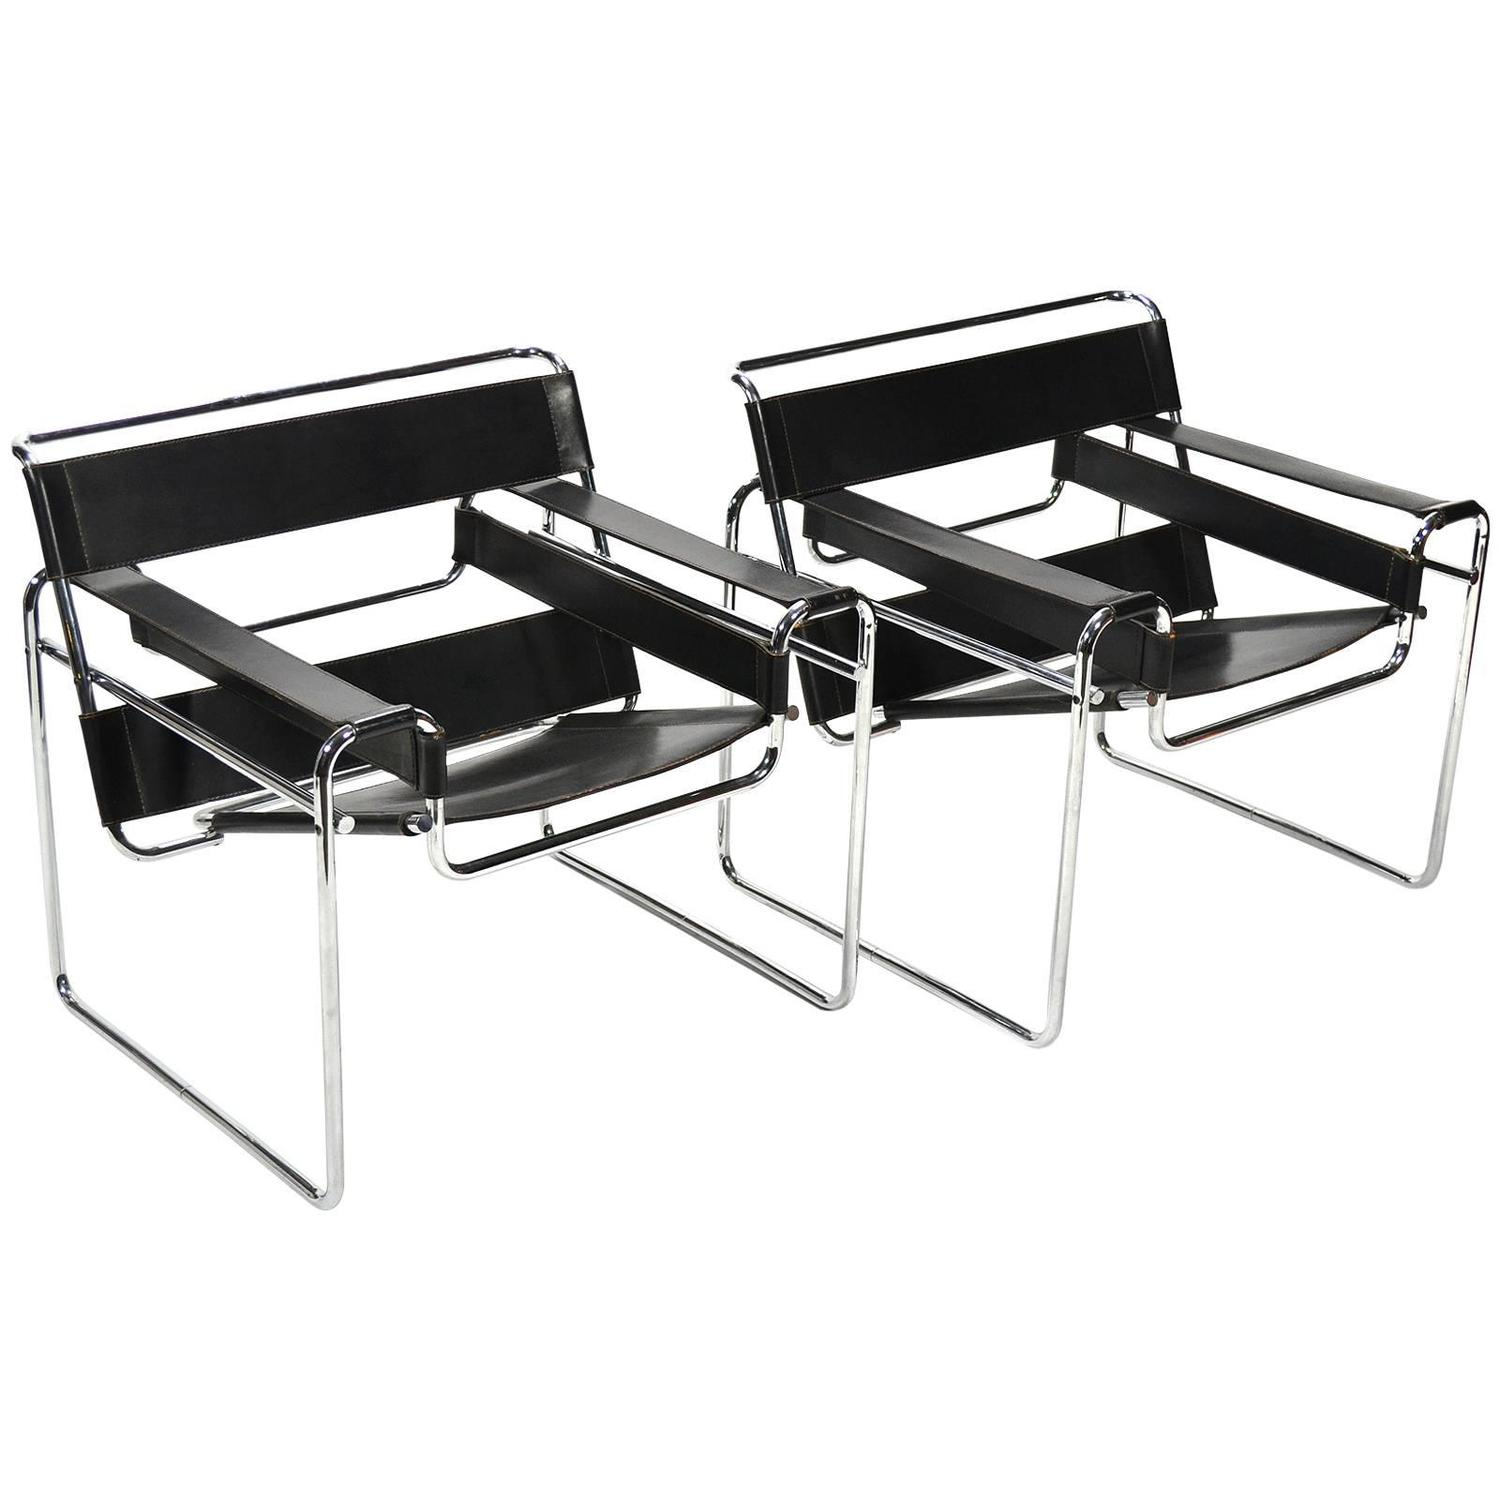 marcel breuer pair of early wassily chairs by knoll for sale at 1stdibs. Black Bedroom Furniture Sets. Home Design Ideas